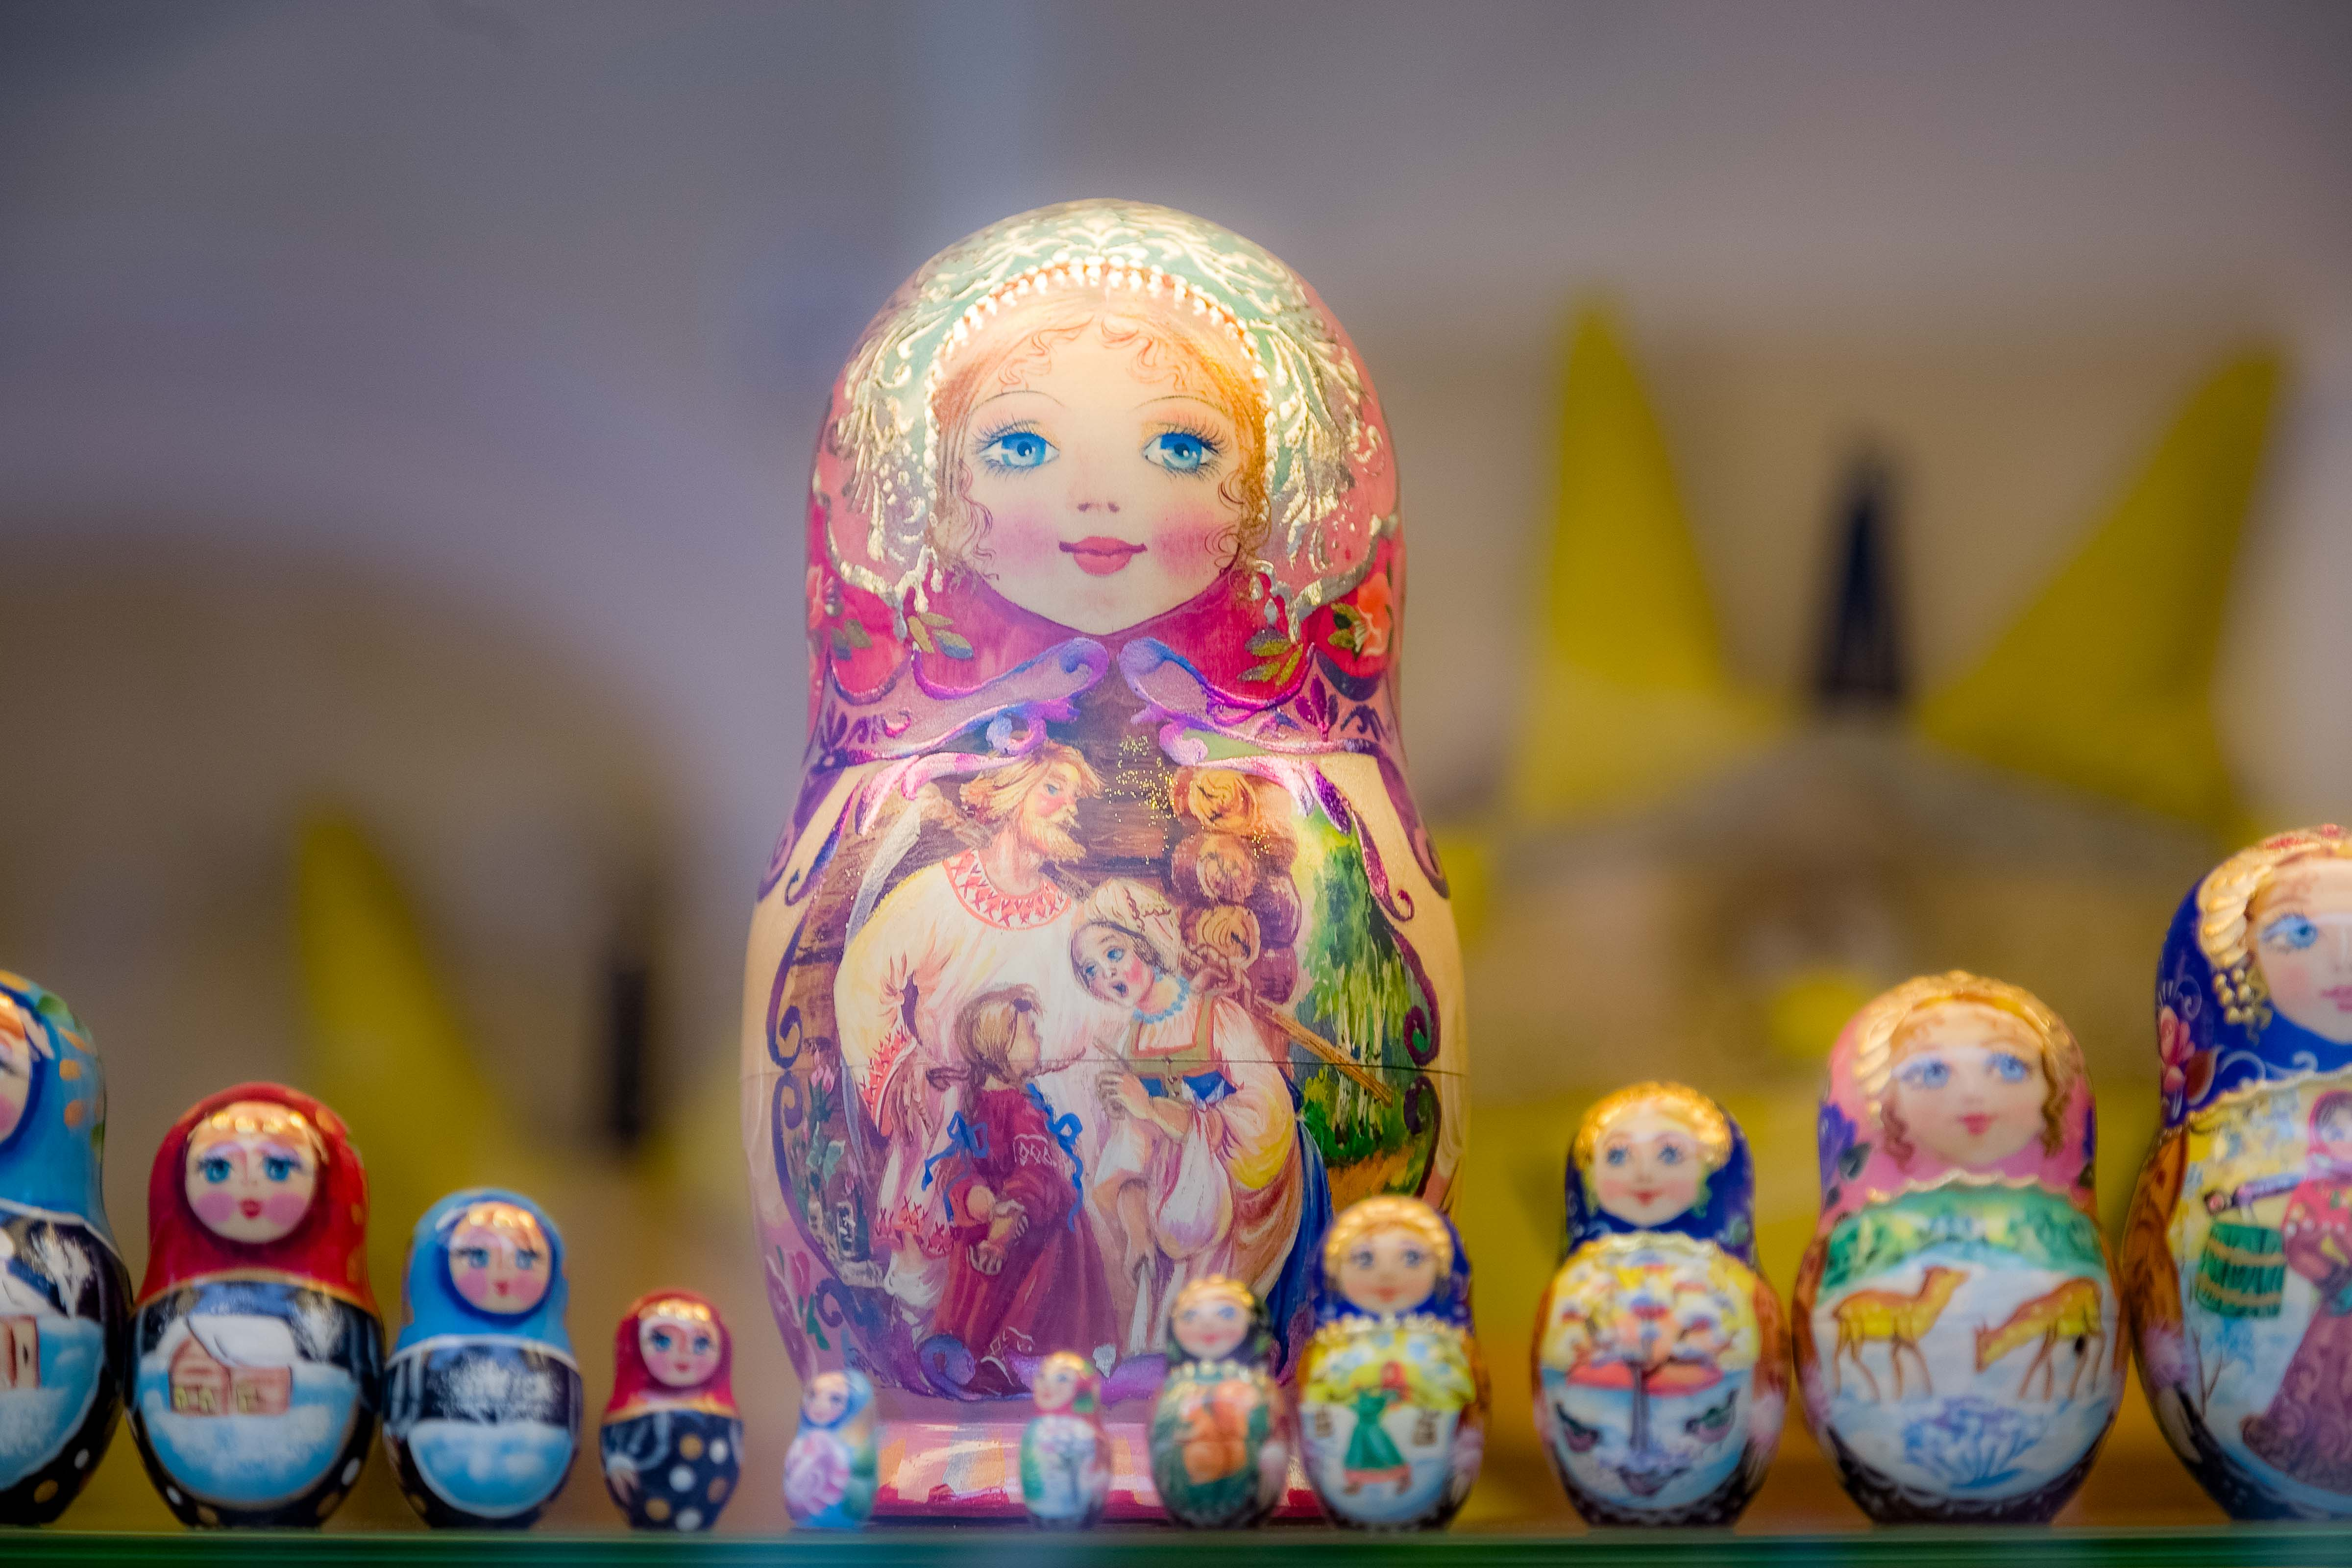 Lithuania, Vilnius, Figurines In Window, 2010, IMG_3104